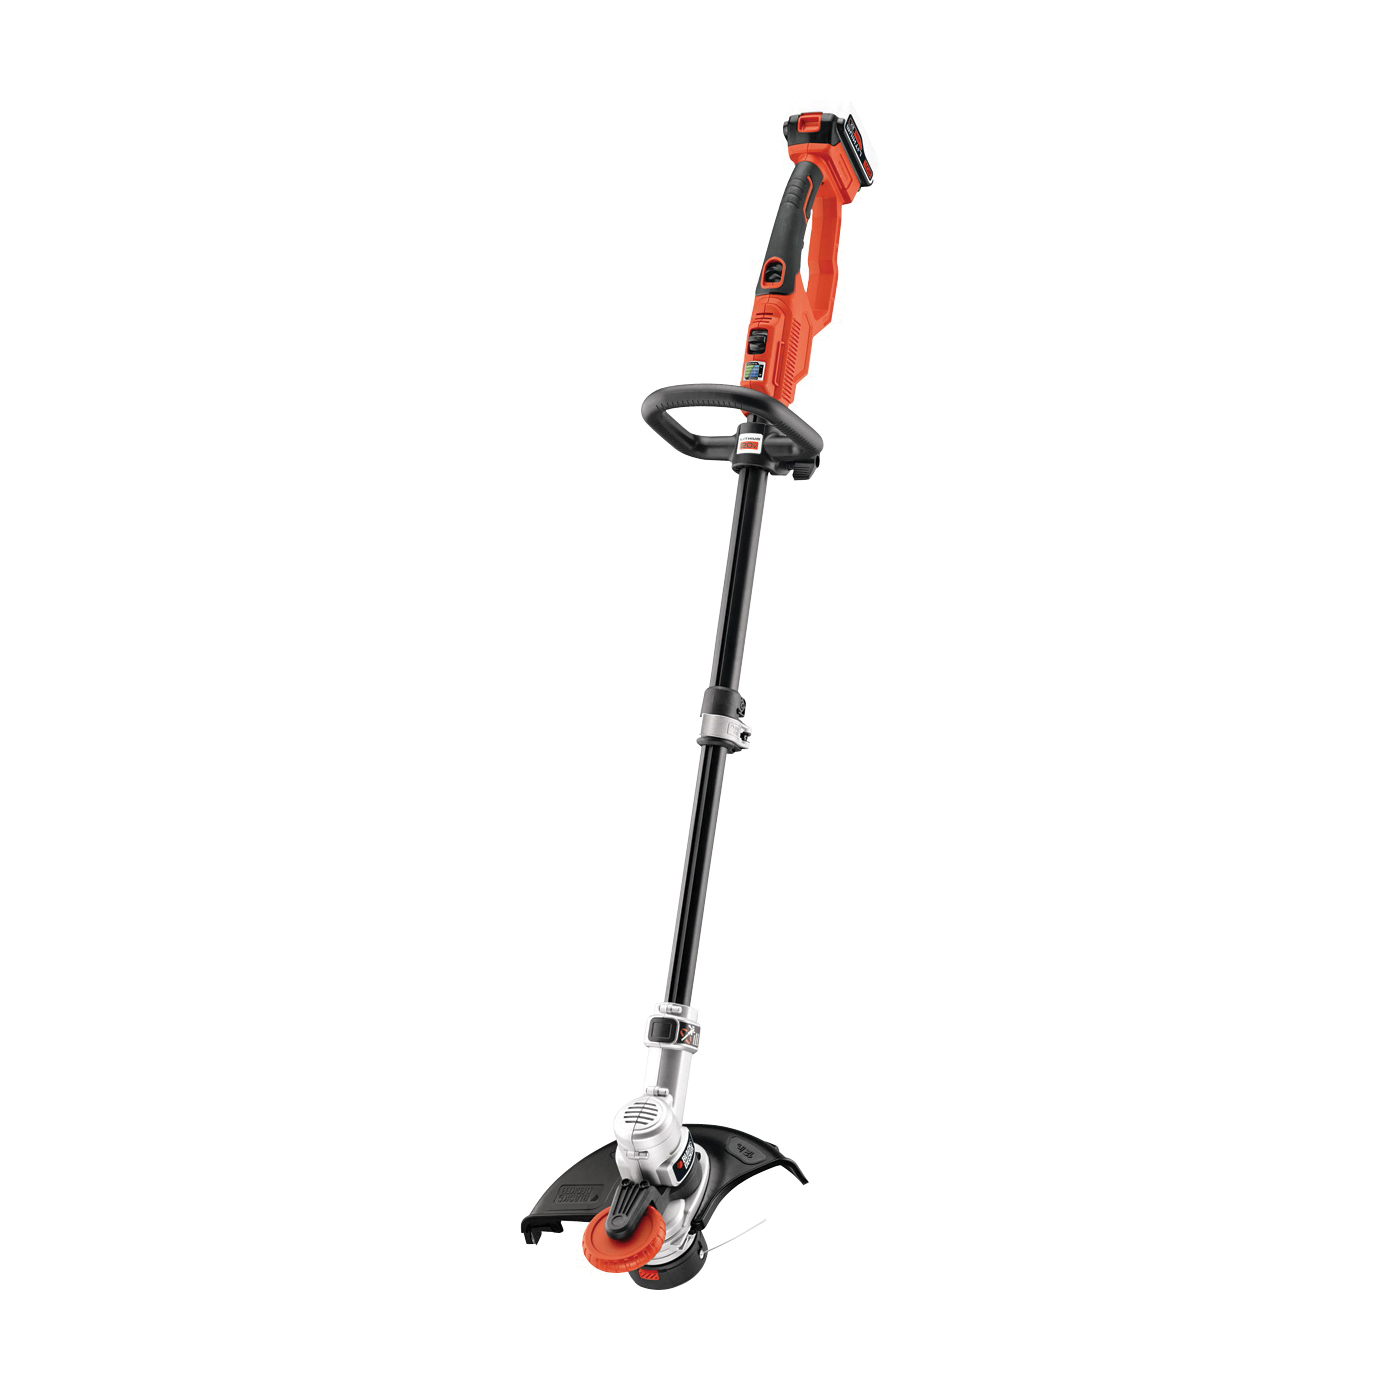 Picture of Black+Decker LSTE523 String Trimmer and Edger, 20 V, 46-1/2 in L Shaft